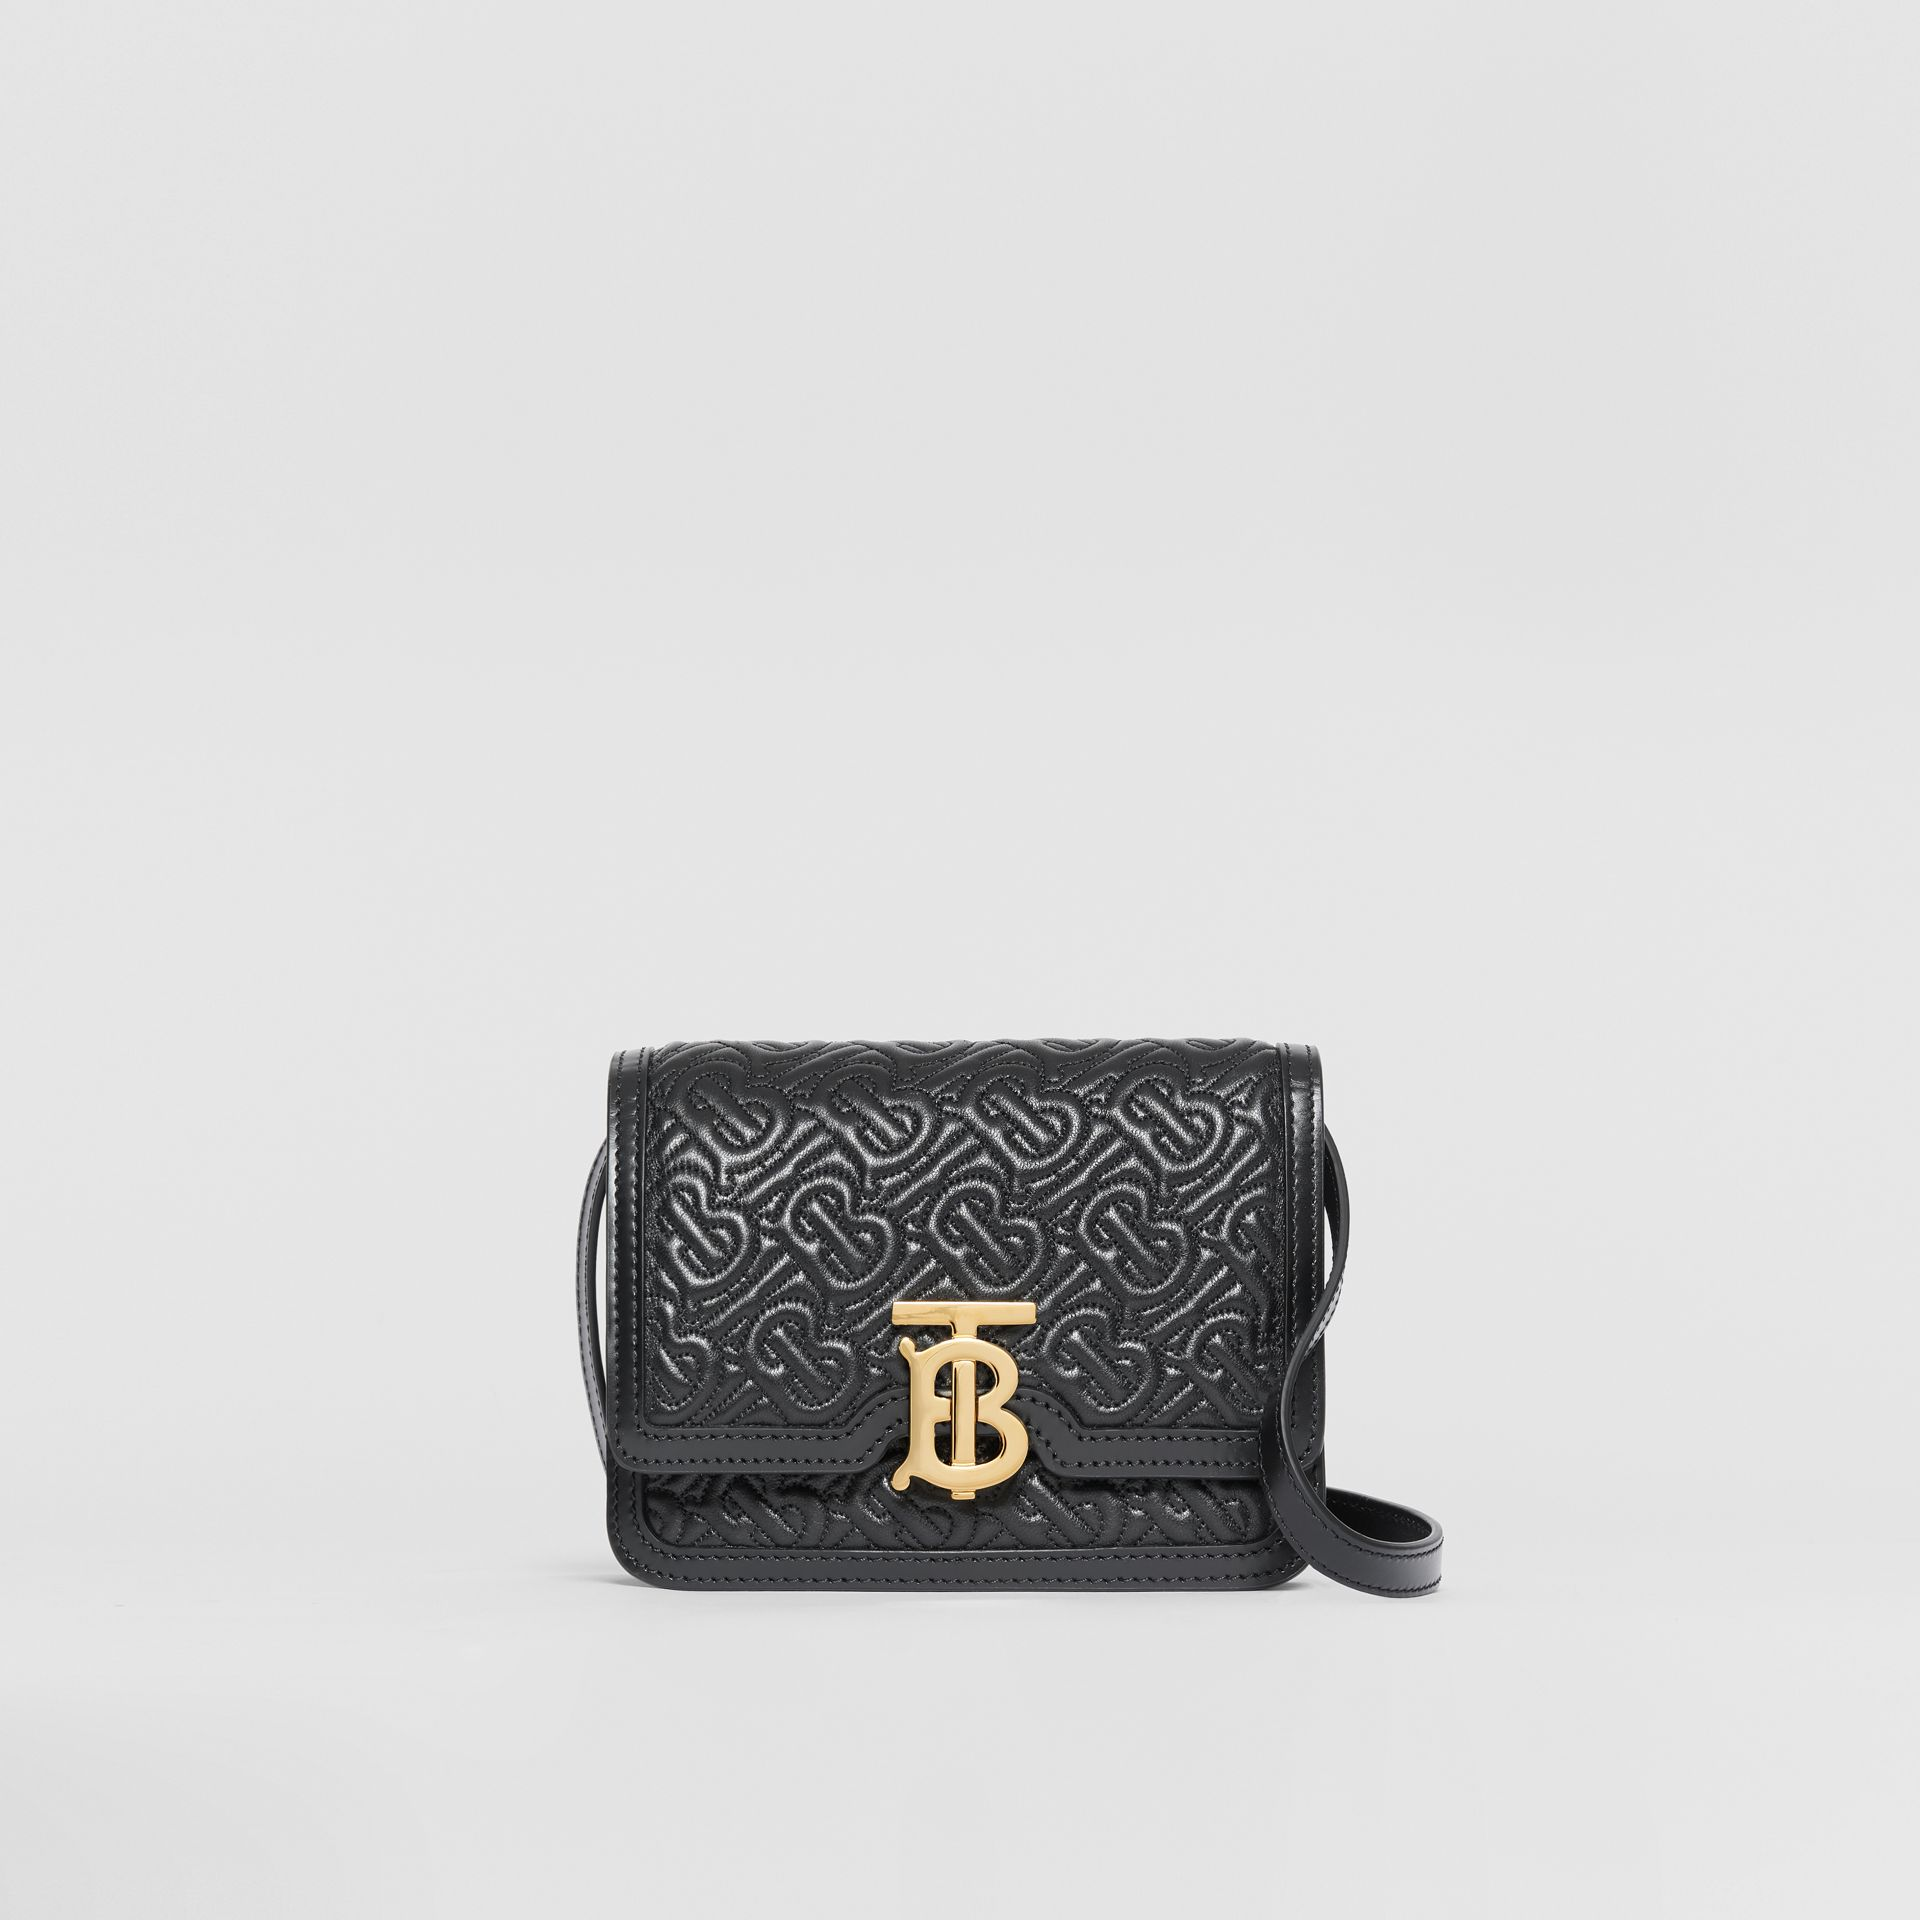 Mini Quilted Monogram Lambskin TB Bag in Black - Women | Burberry - gallery image 0